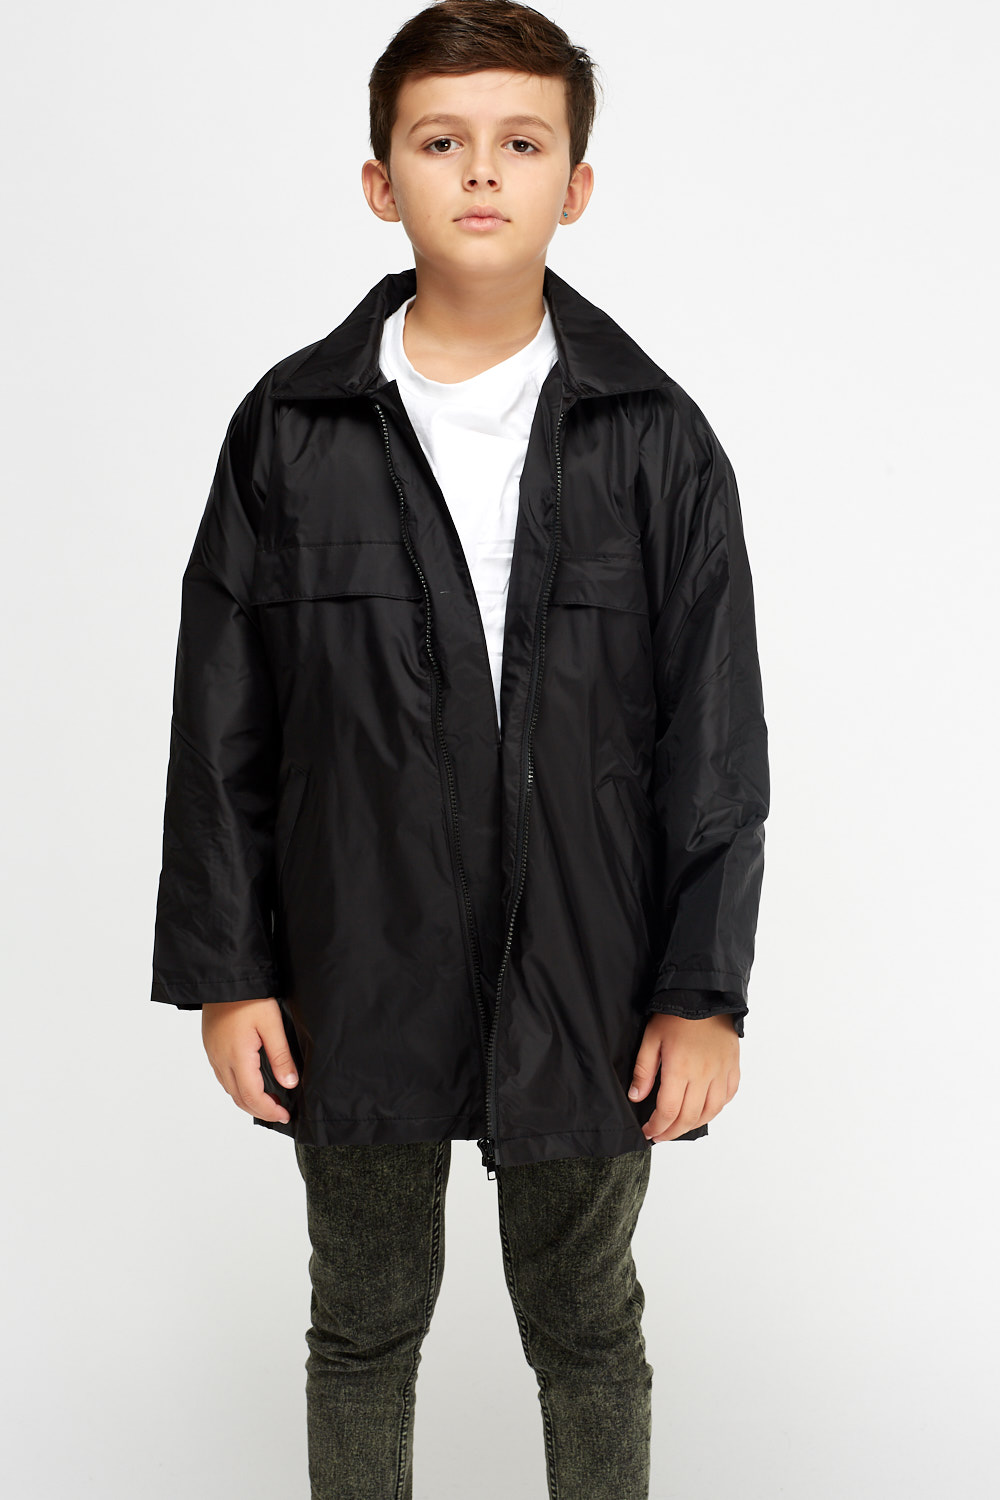 Casual Waterproof Jacket - 9 Colours - Just £5